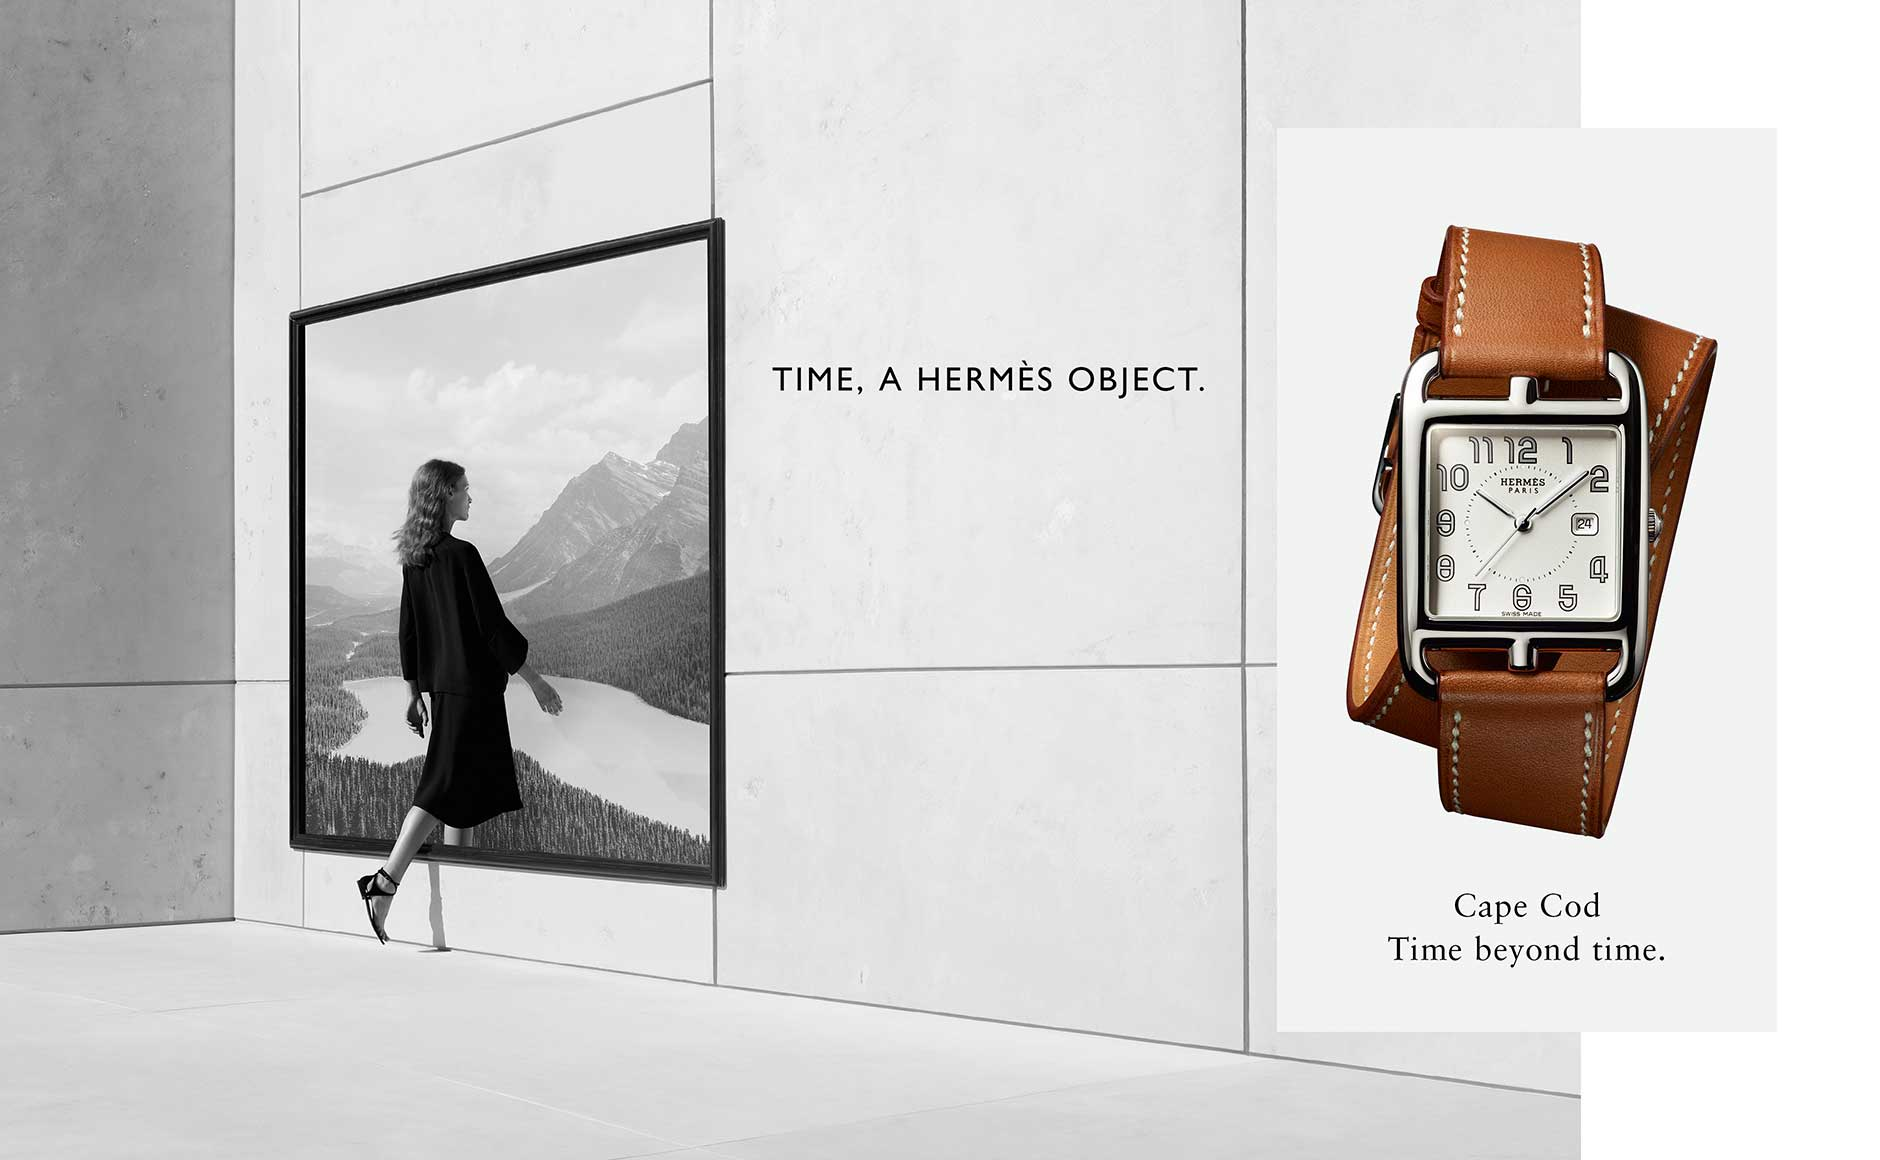 Time, A Hermes Object. Cape Code - Time beyond time.